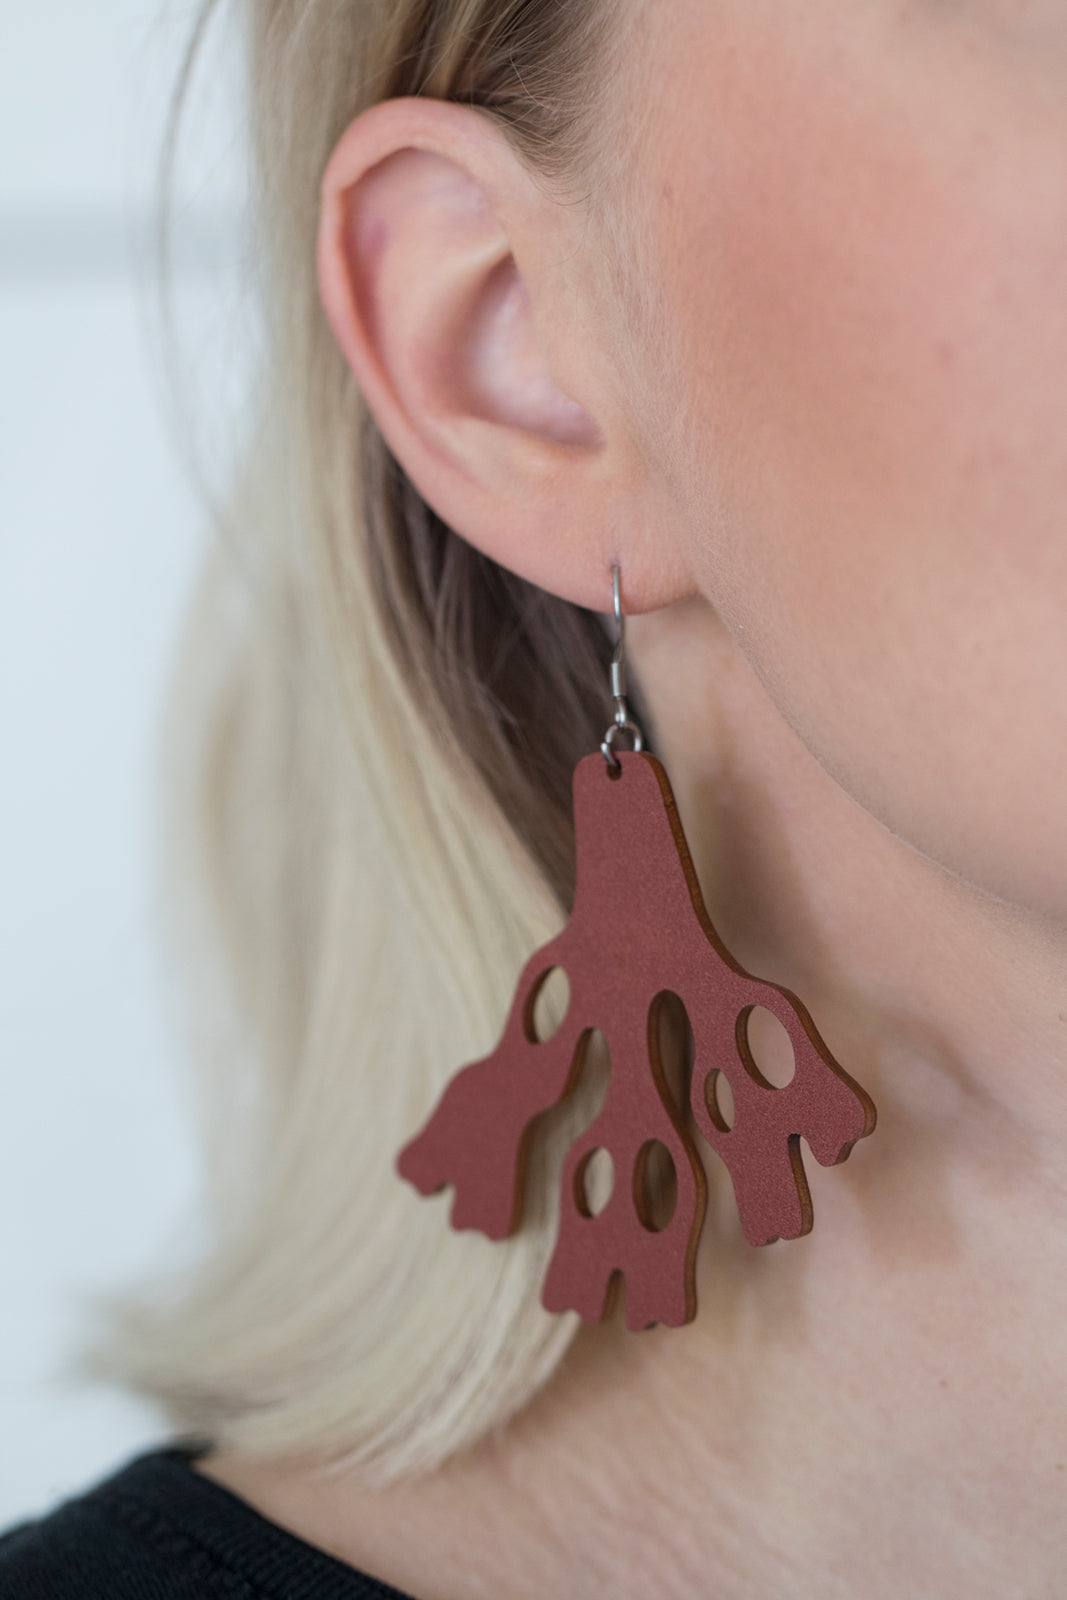 Meri earrings in use